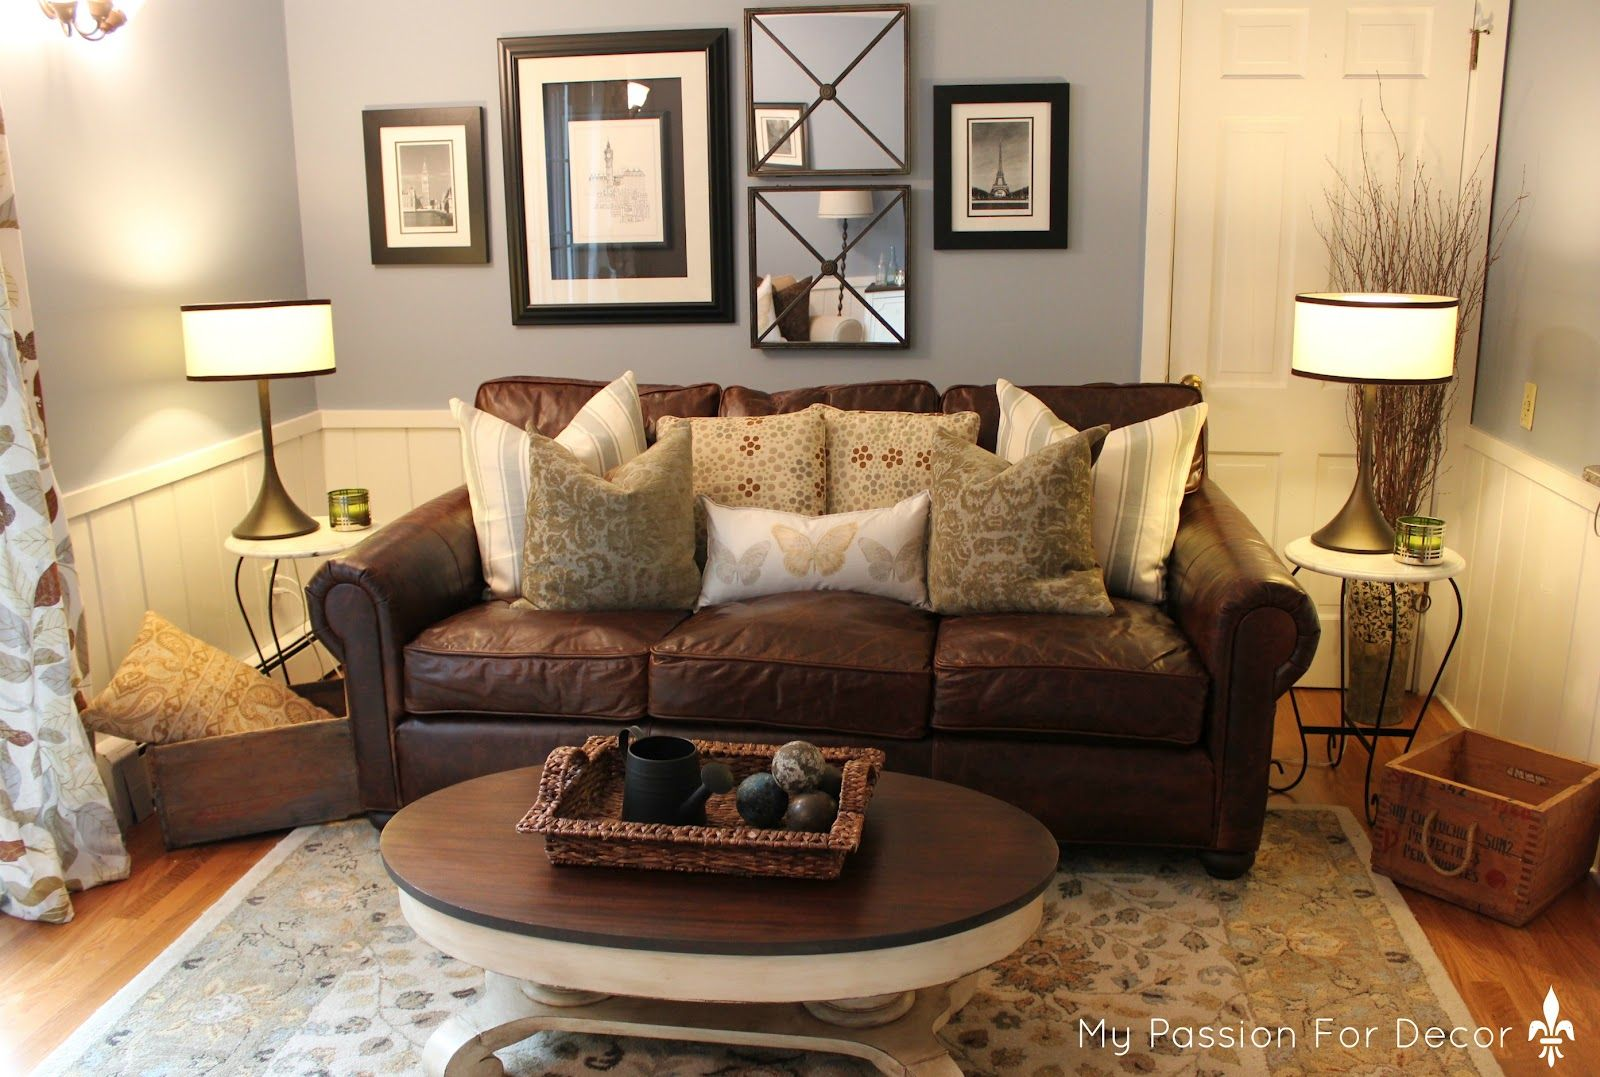 Best This Is What I Want My Living Room To Look Like Someday 400 x 300